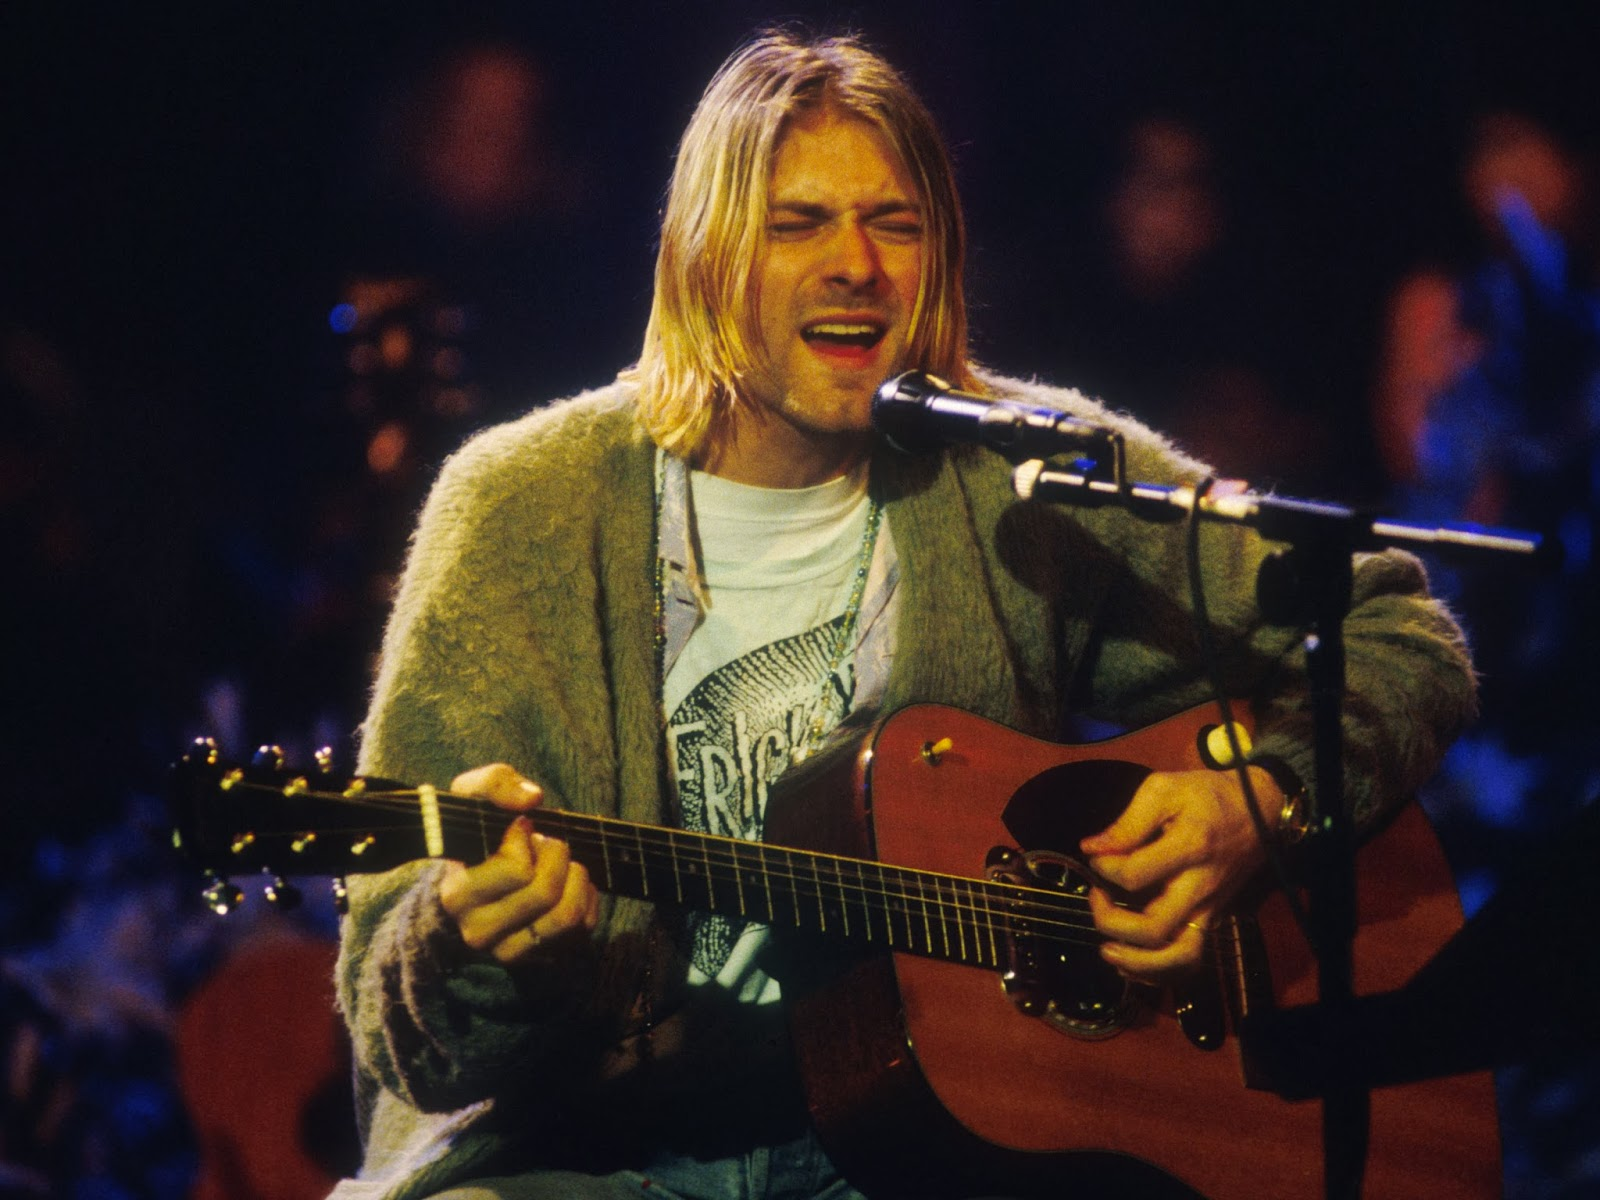 This year marks twenty years since Kurt Cobain d What you don t know who Kurt Cobain was Now I do feel old